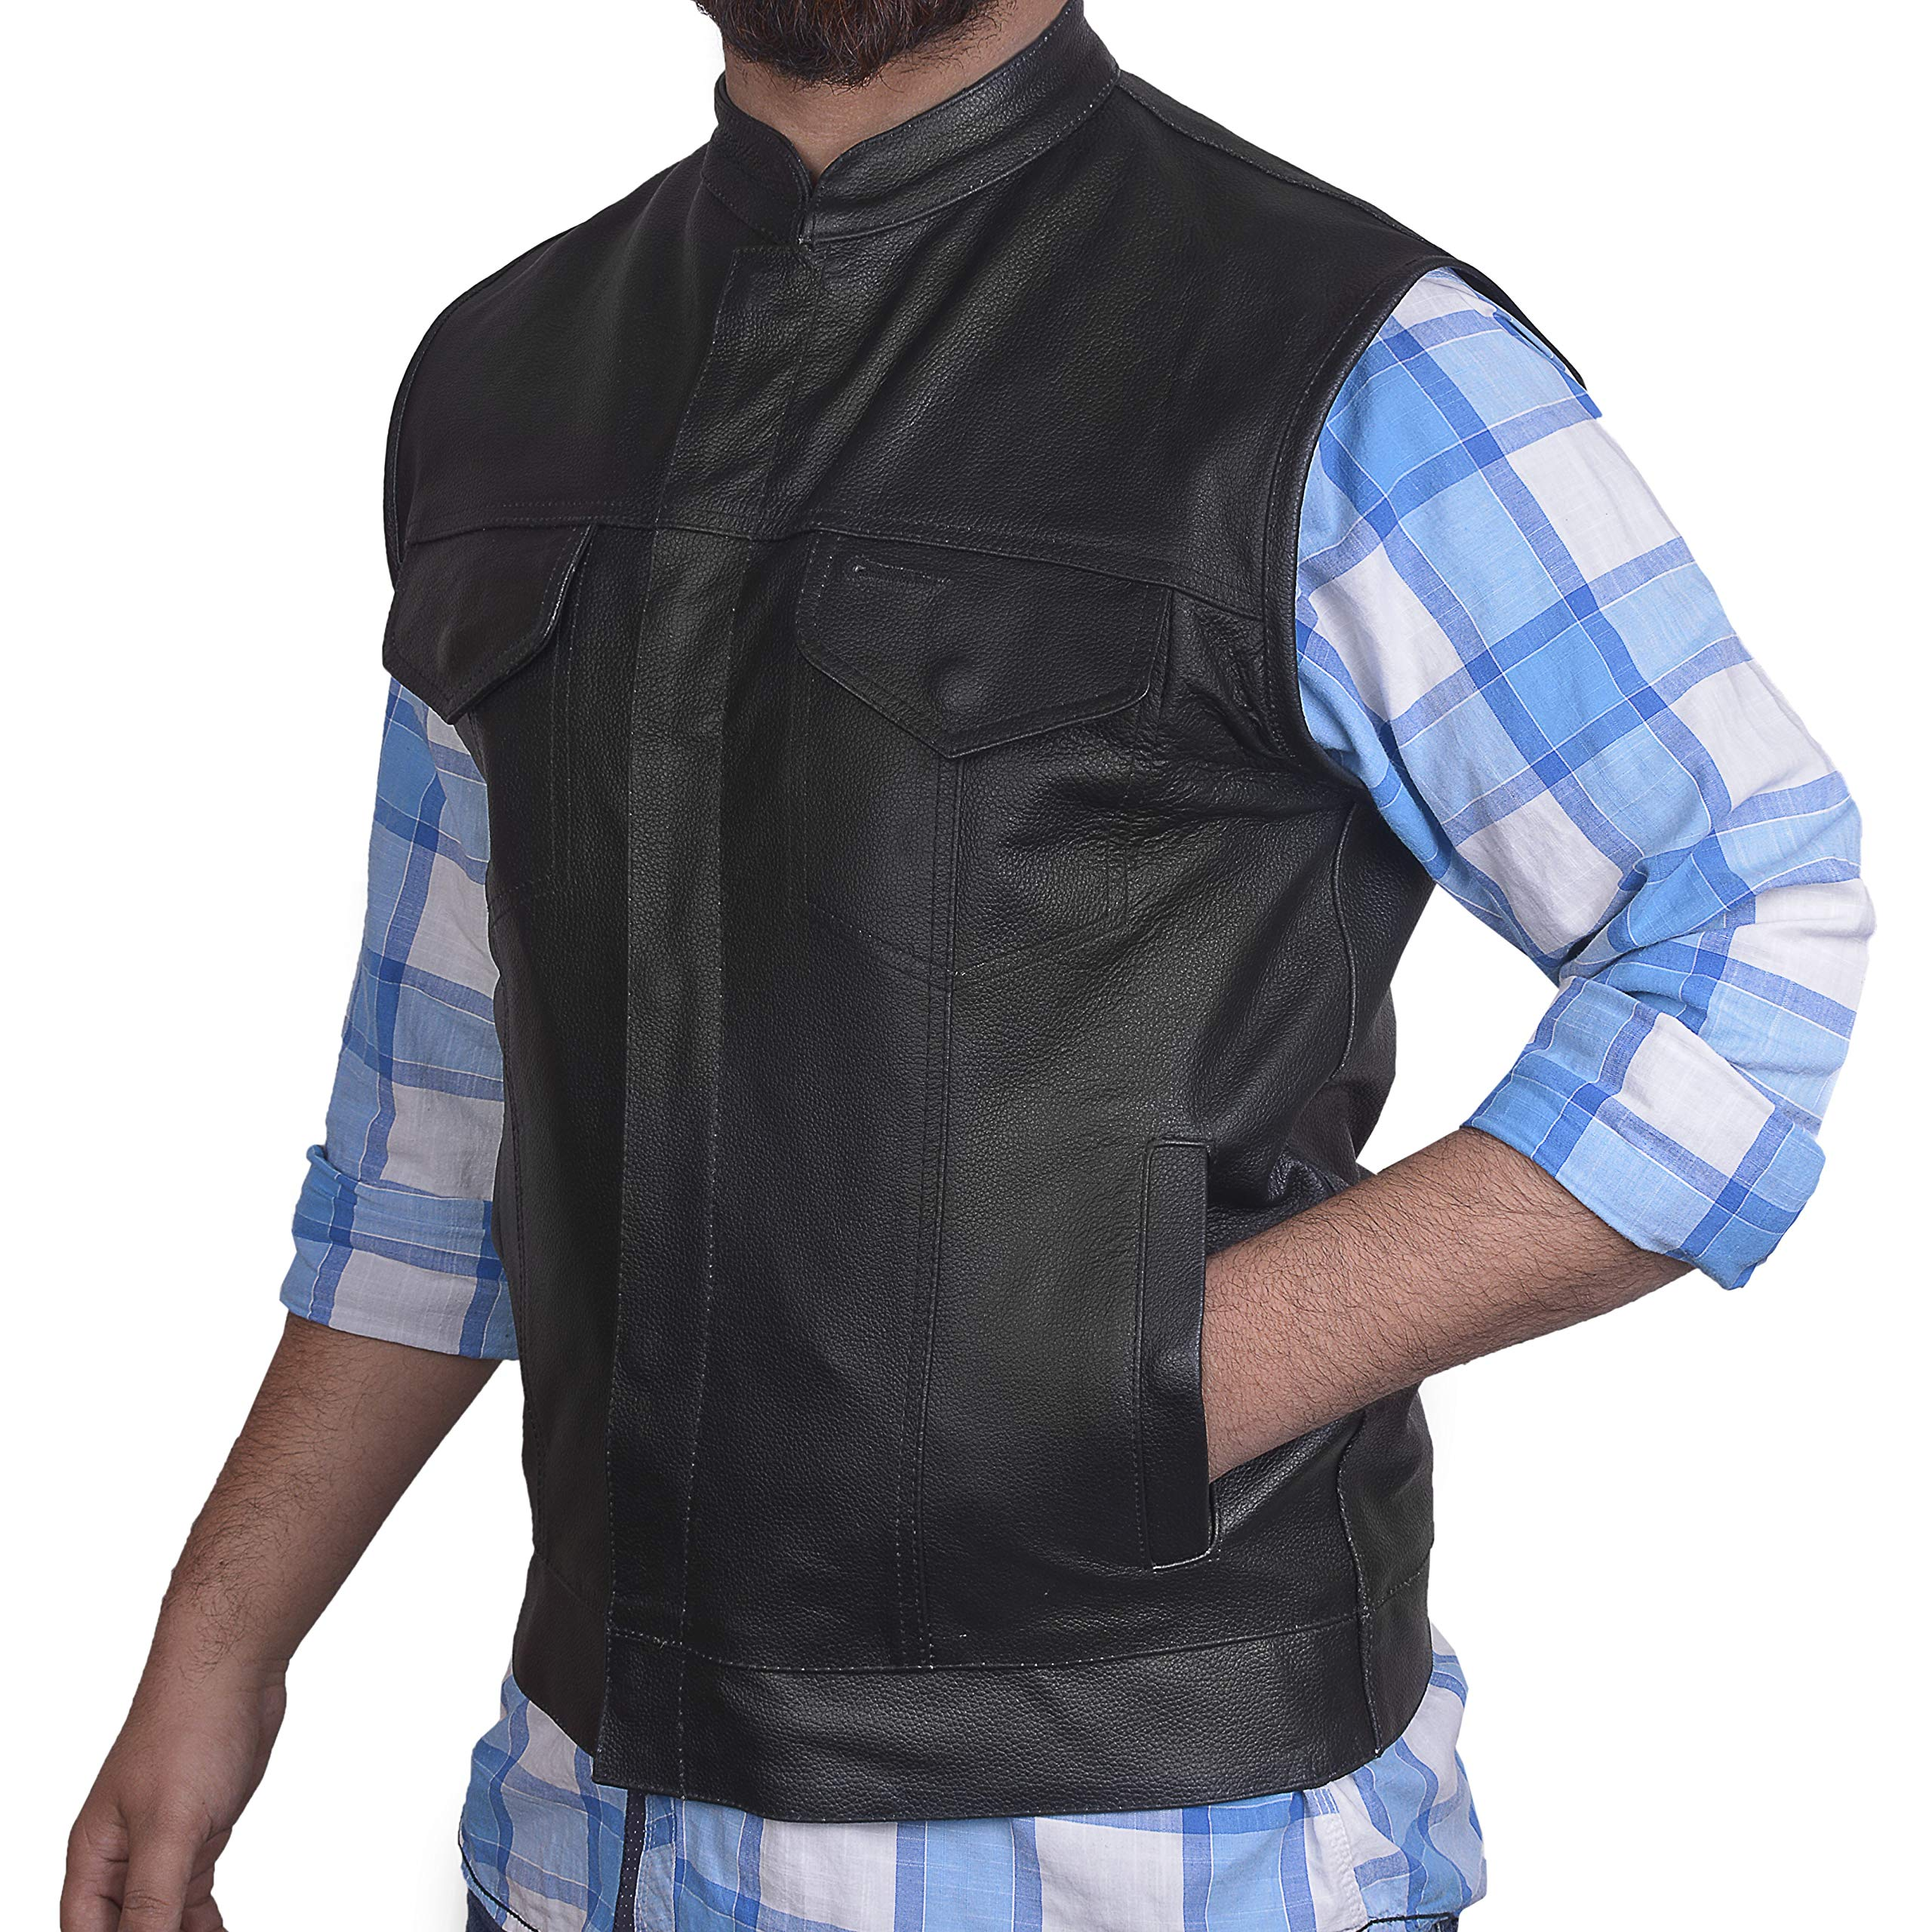 Men's SOA Motorcycle Genuine Cowhide Leather Club Style Vest with Concealed Gun Pockets New (3XL) by DEFY Moto Leather